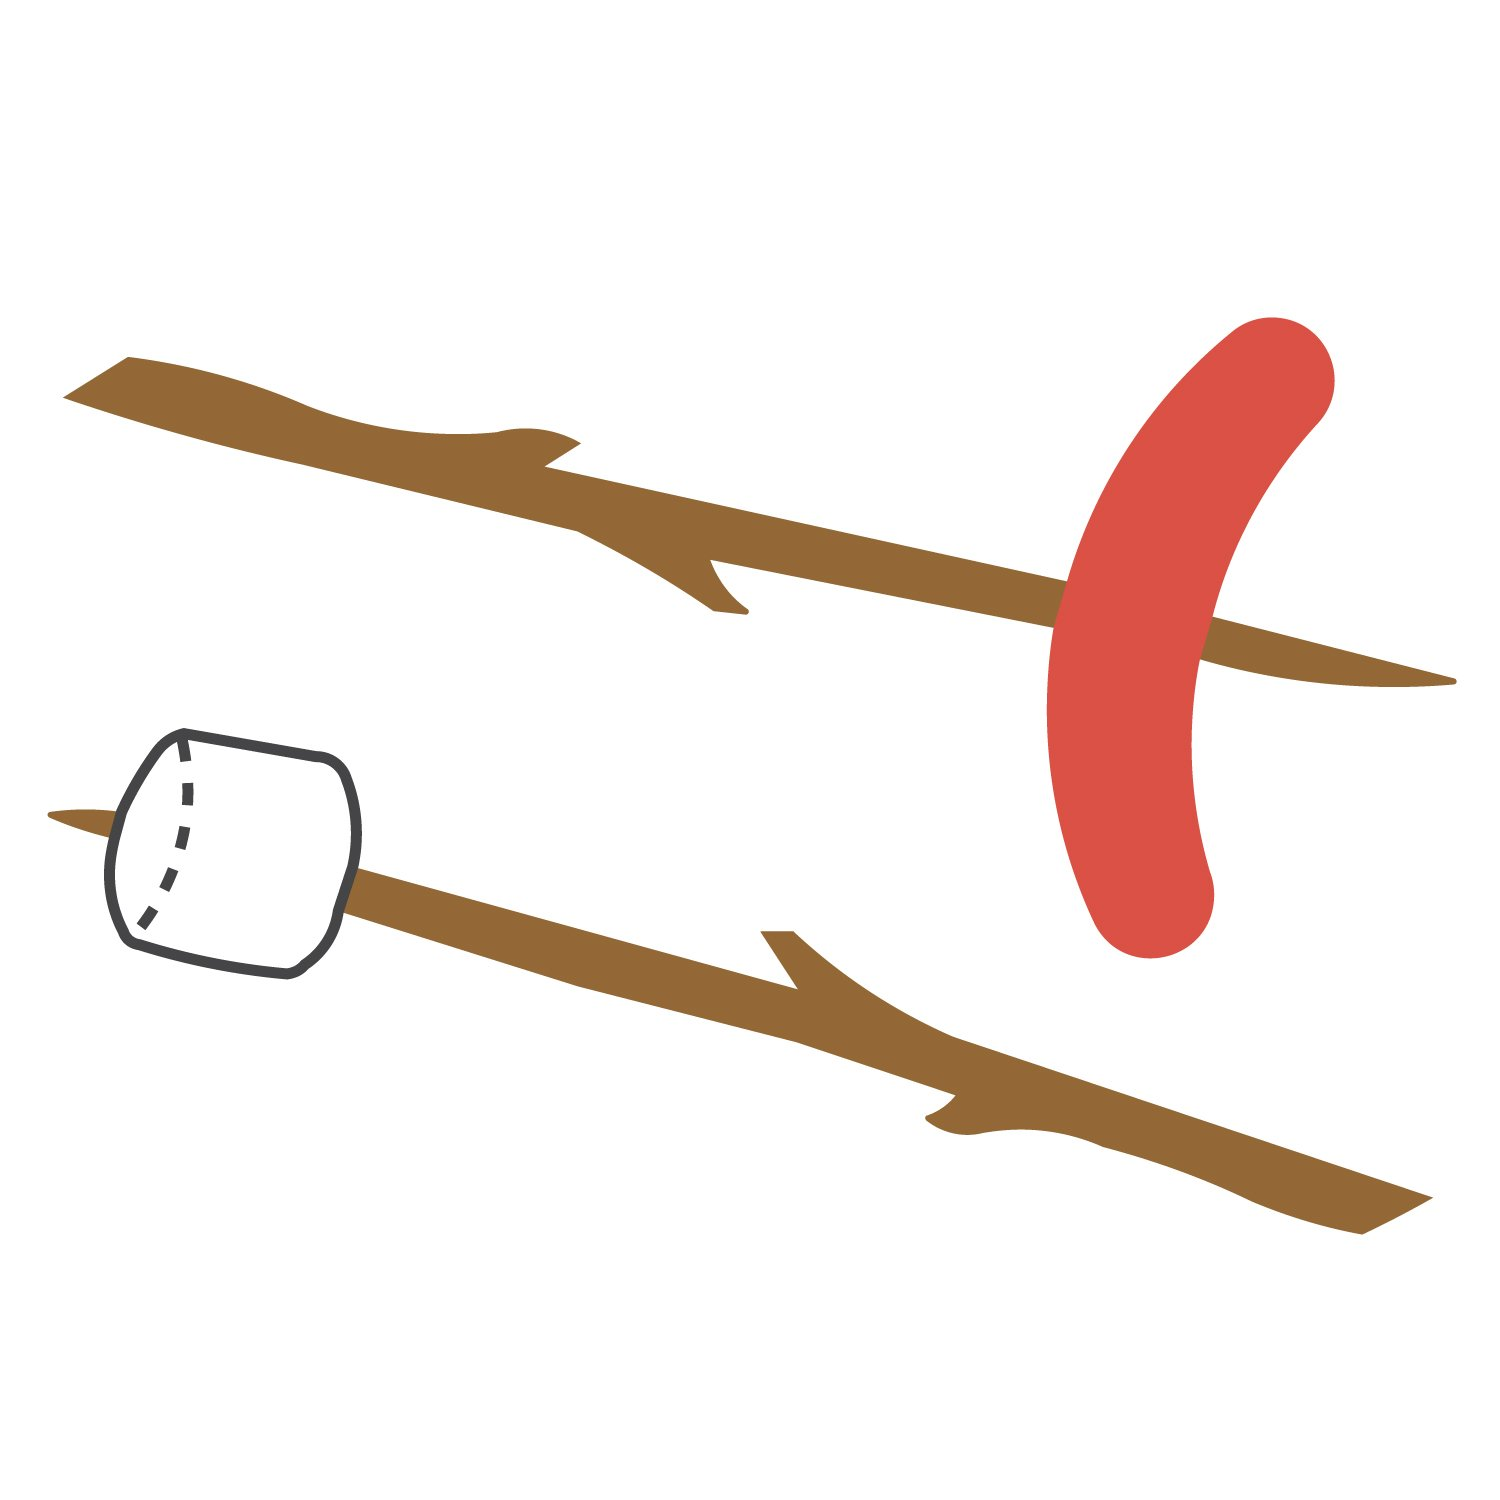 Hot dog on a stick clipart graphic royalty free stock Marshmallow/Hot Dog on Stick graphic royalty free stock